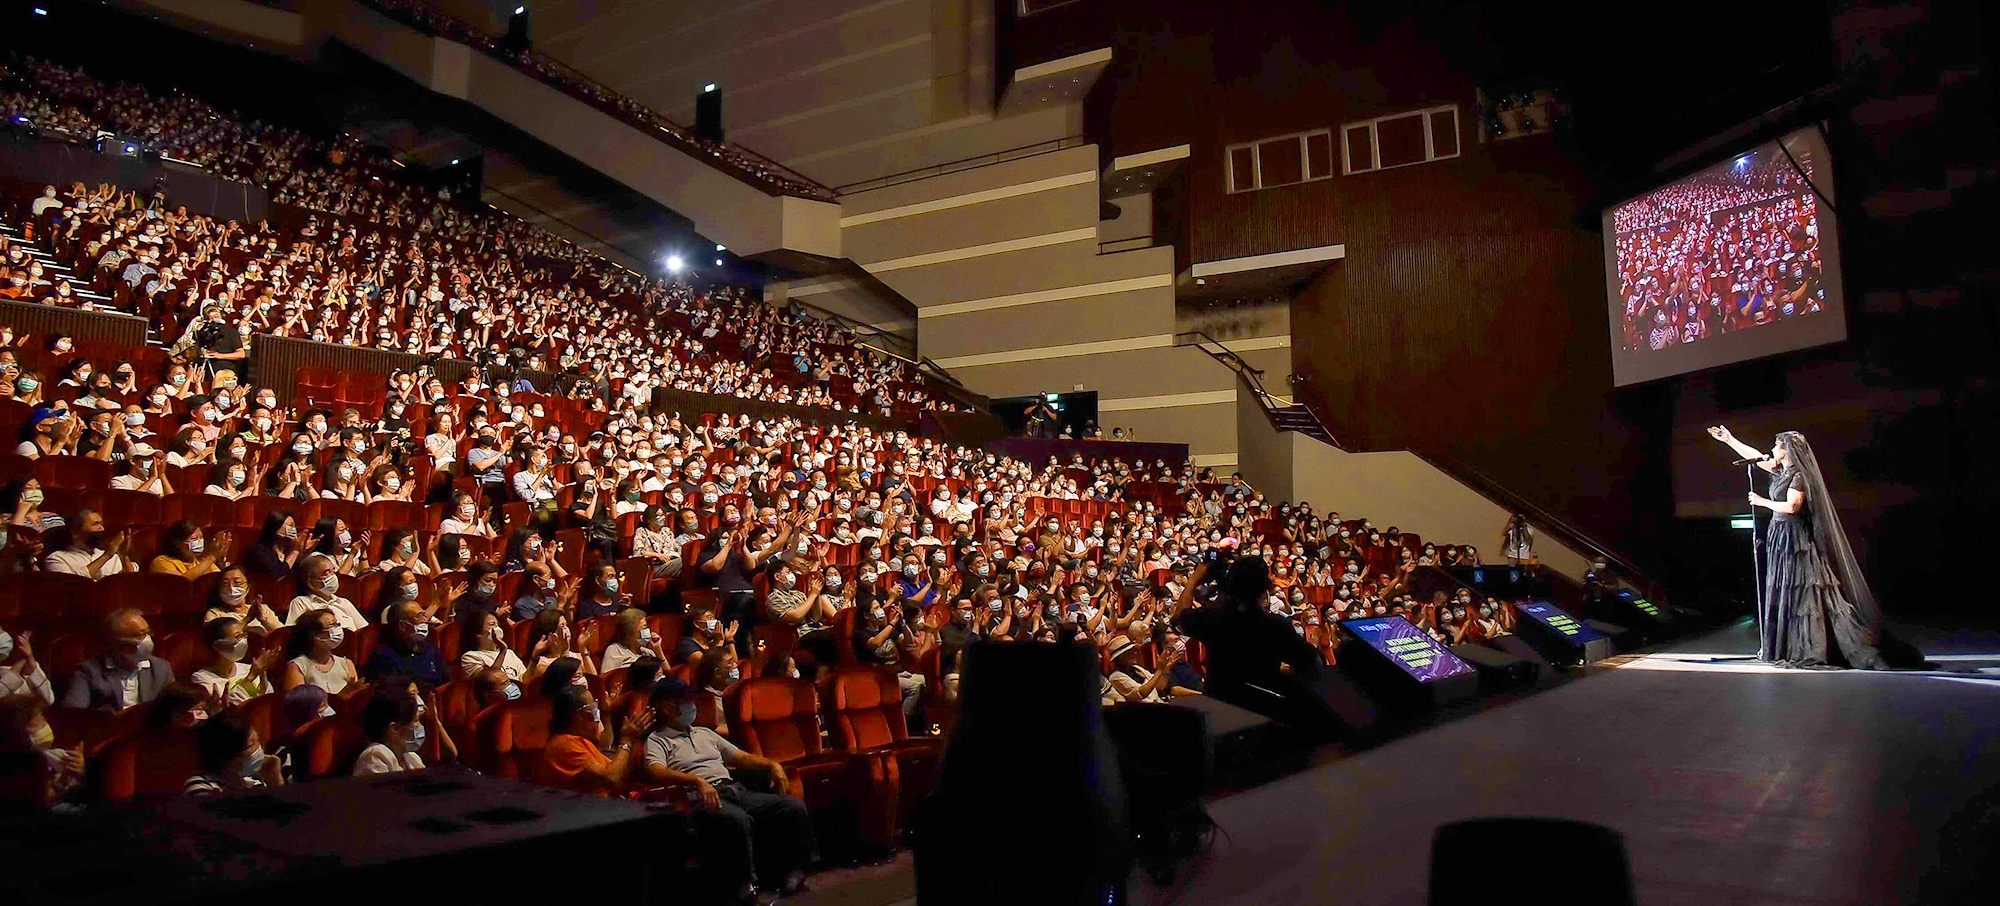 Michelle Pan's Voice Touches Hearts with L-Acoustics K2/Kara system featured image